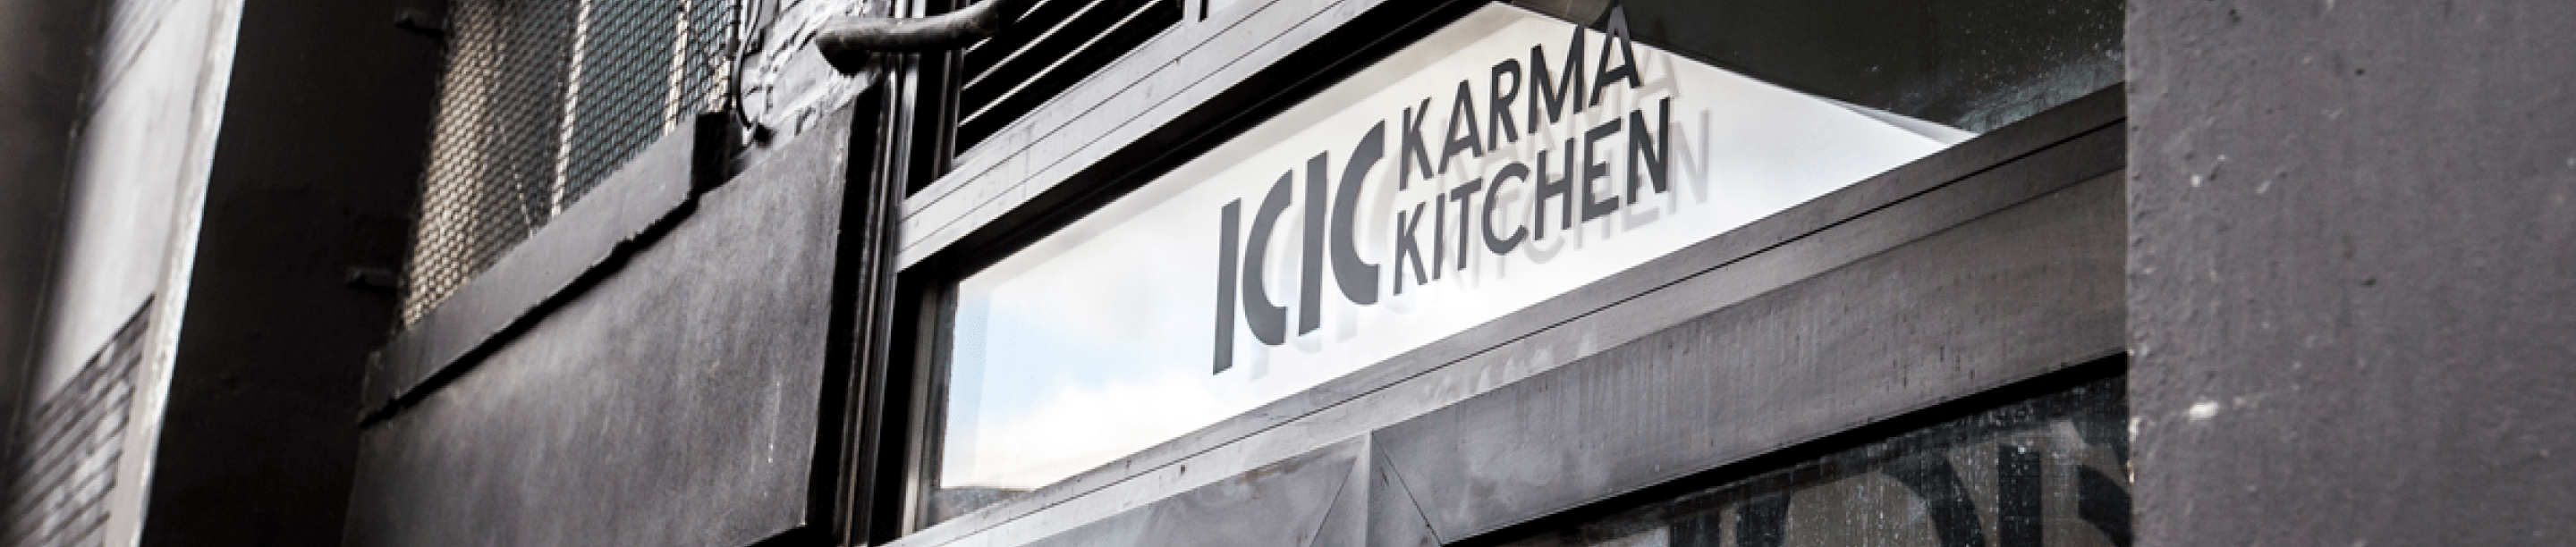 Karma Kitchen United Kingdom